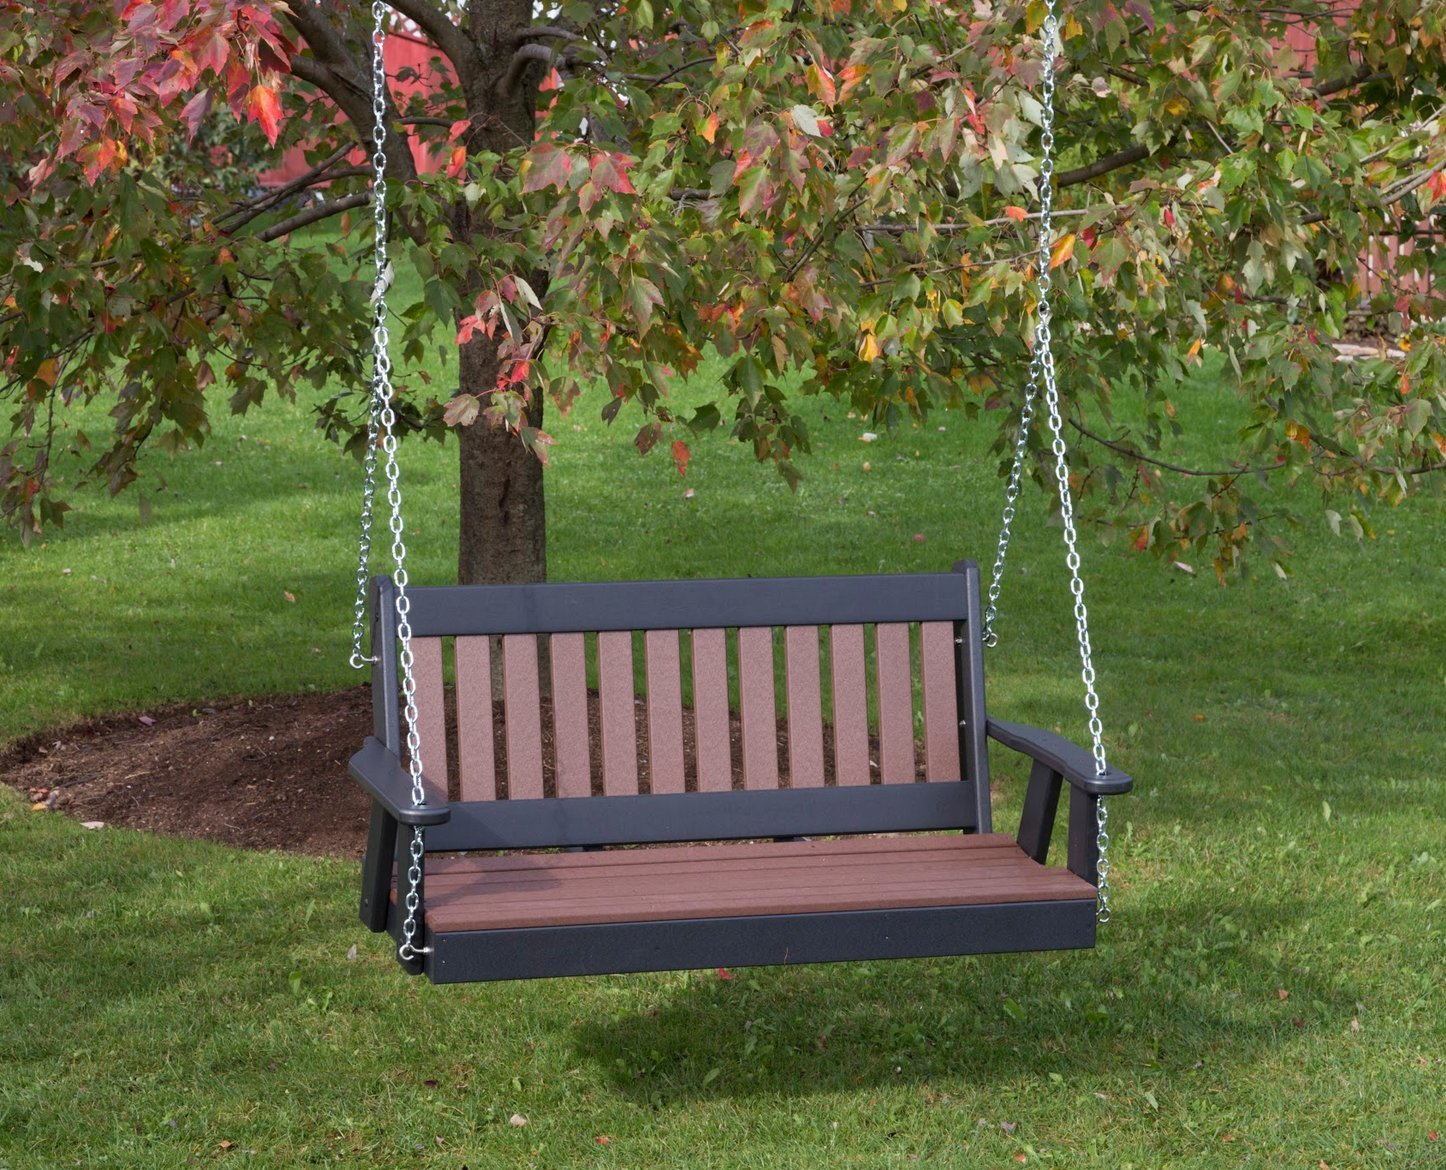 Ecommersify Inc 5FT-Cedar-Poly Lumber Mission Porch Swing Heavy Duty Everlasting PolyTuf HDPE – Made in USA – Amish Crafted